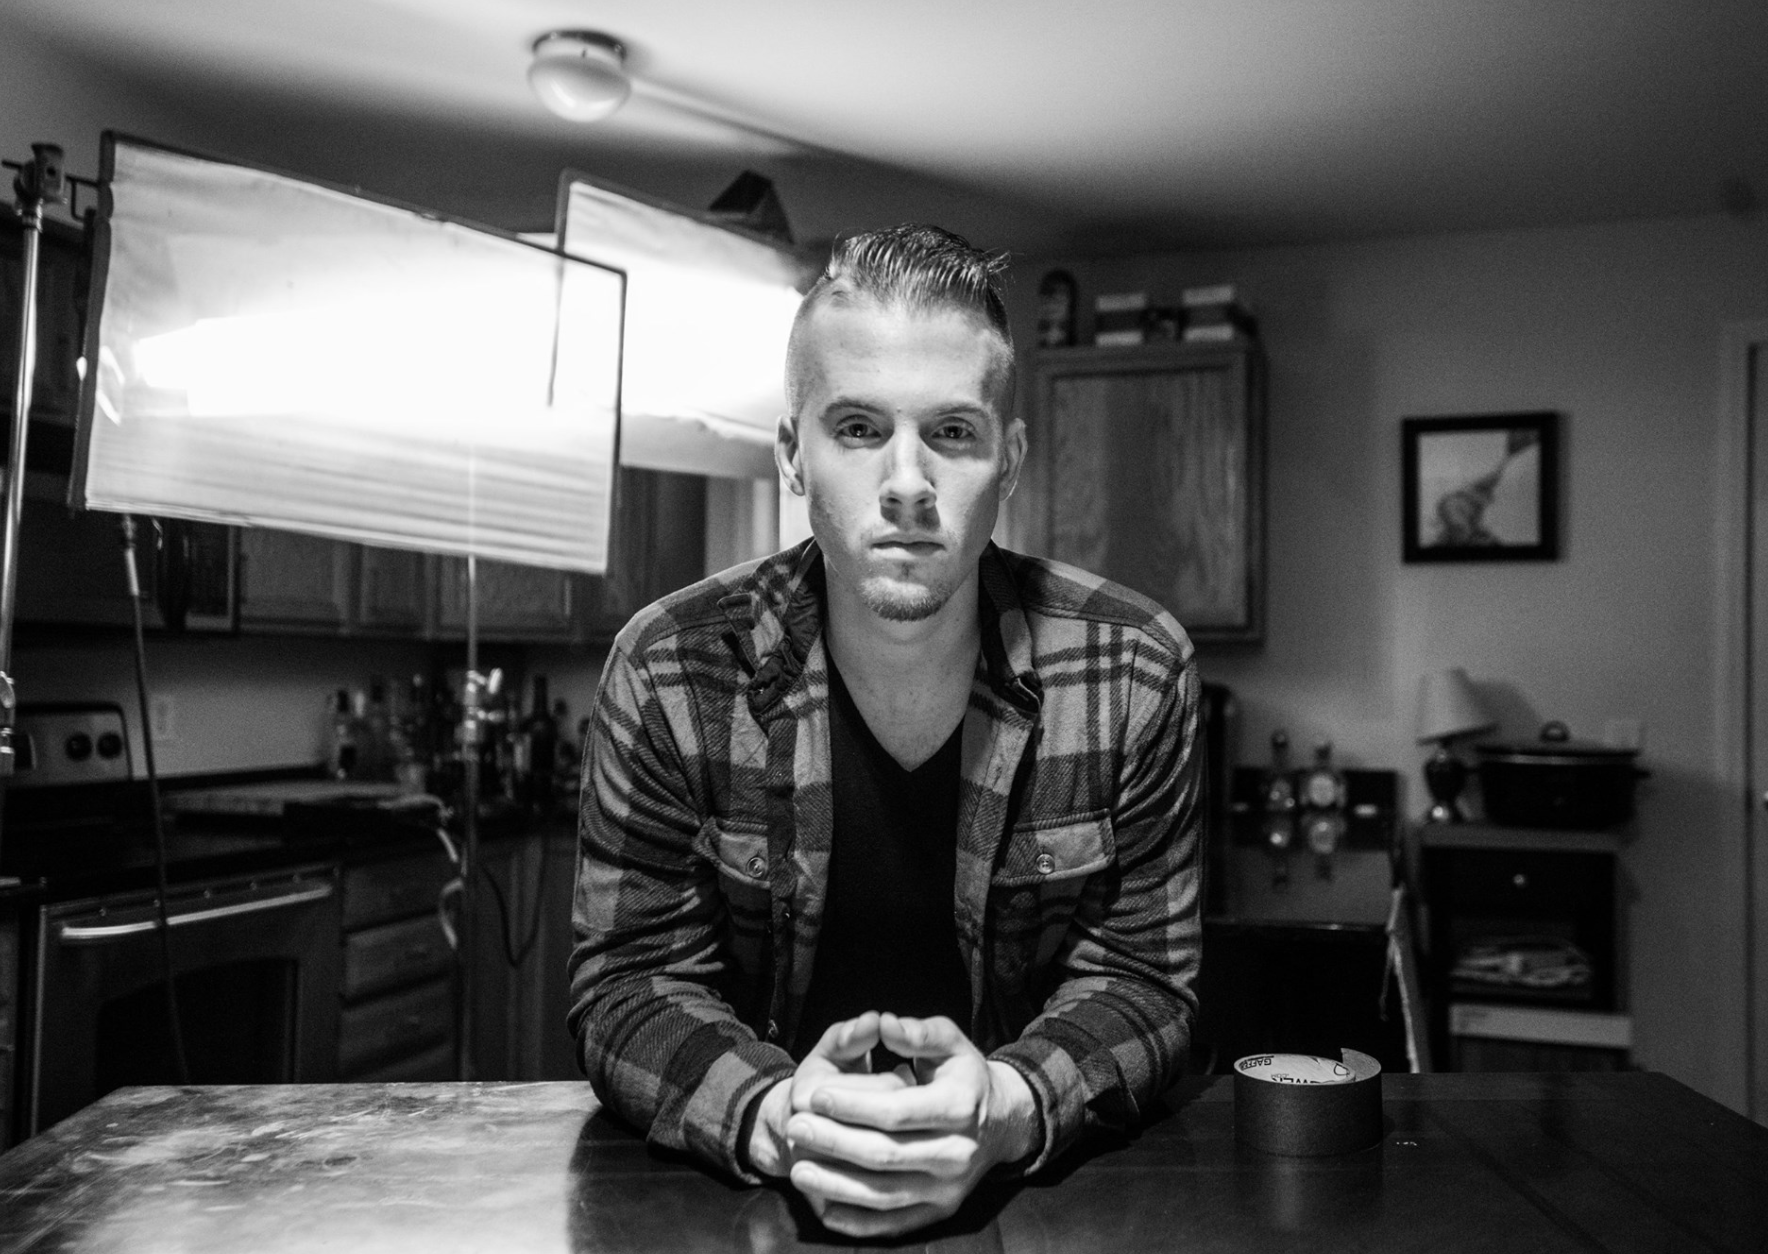 Drew Phillips | Director, Writer - This project hits close to home for me. I witnessed the horrors of addiction firsthand; I believe everyone has something they can let go of in order to make a positive change in their life.